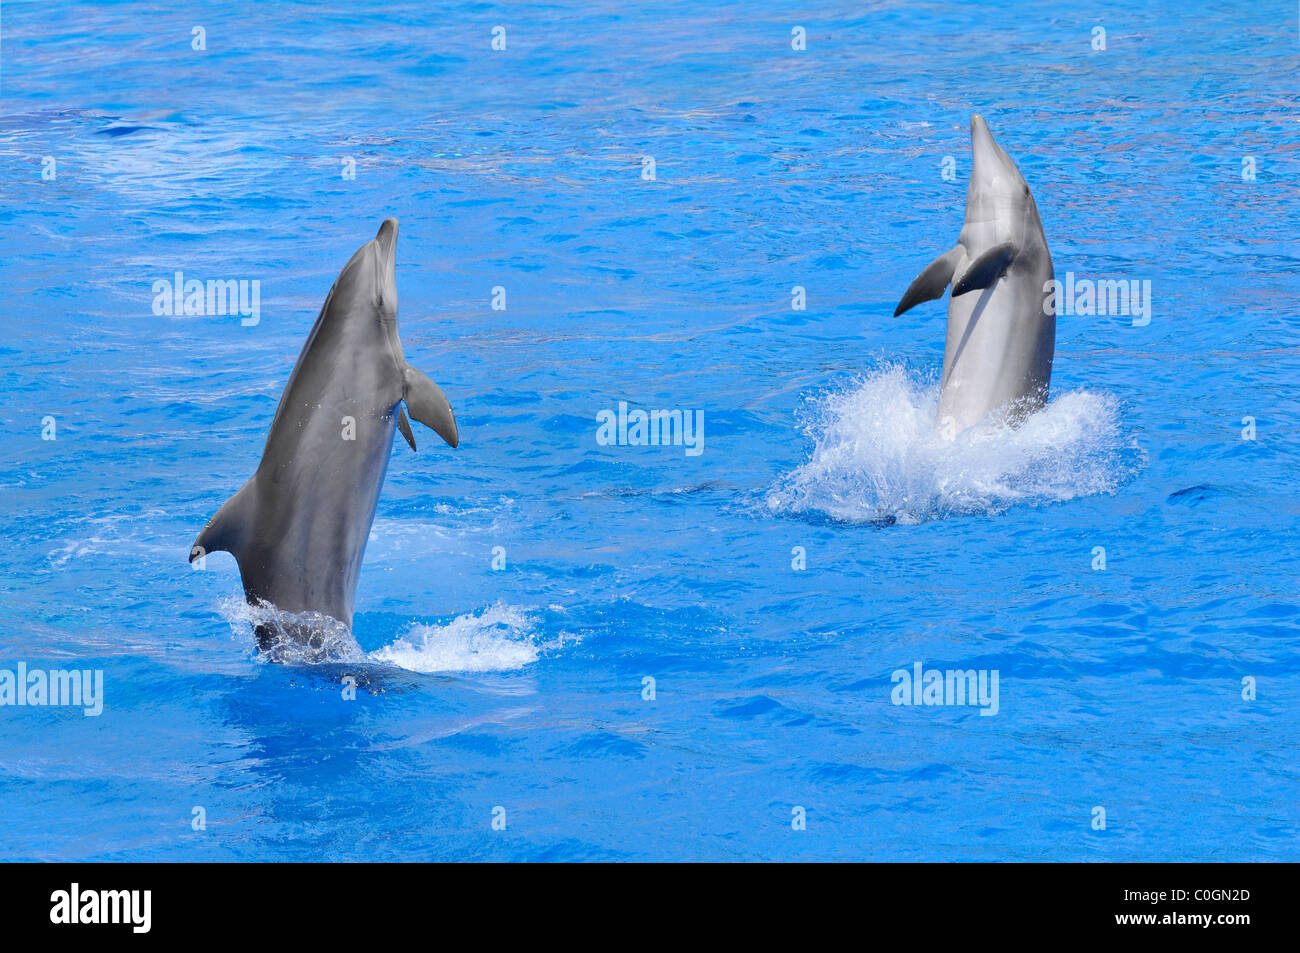 Two bottlenose dolphins (Tursiops truncatus) standing on blue water - Stock Image